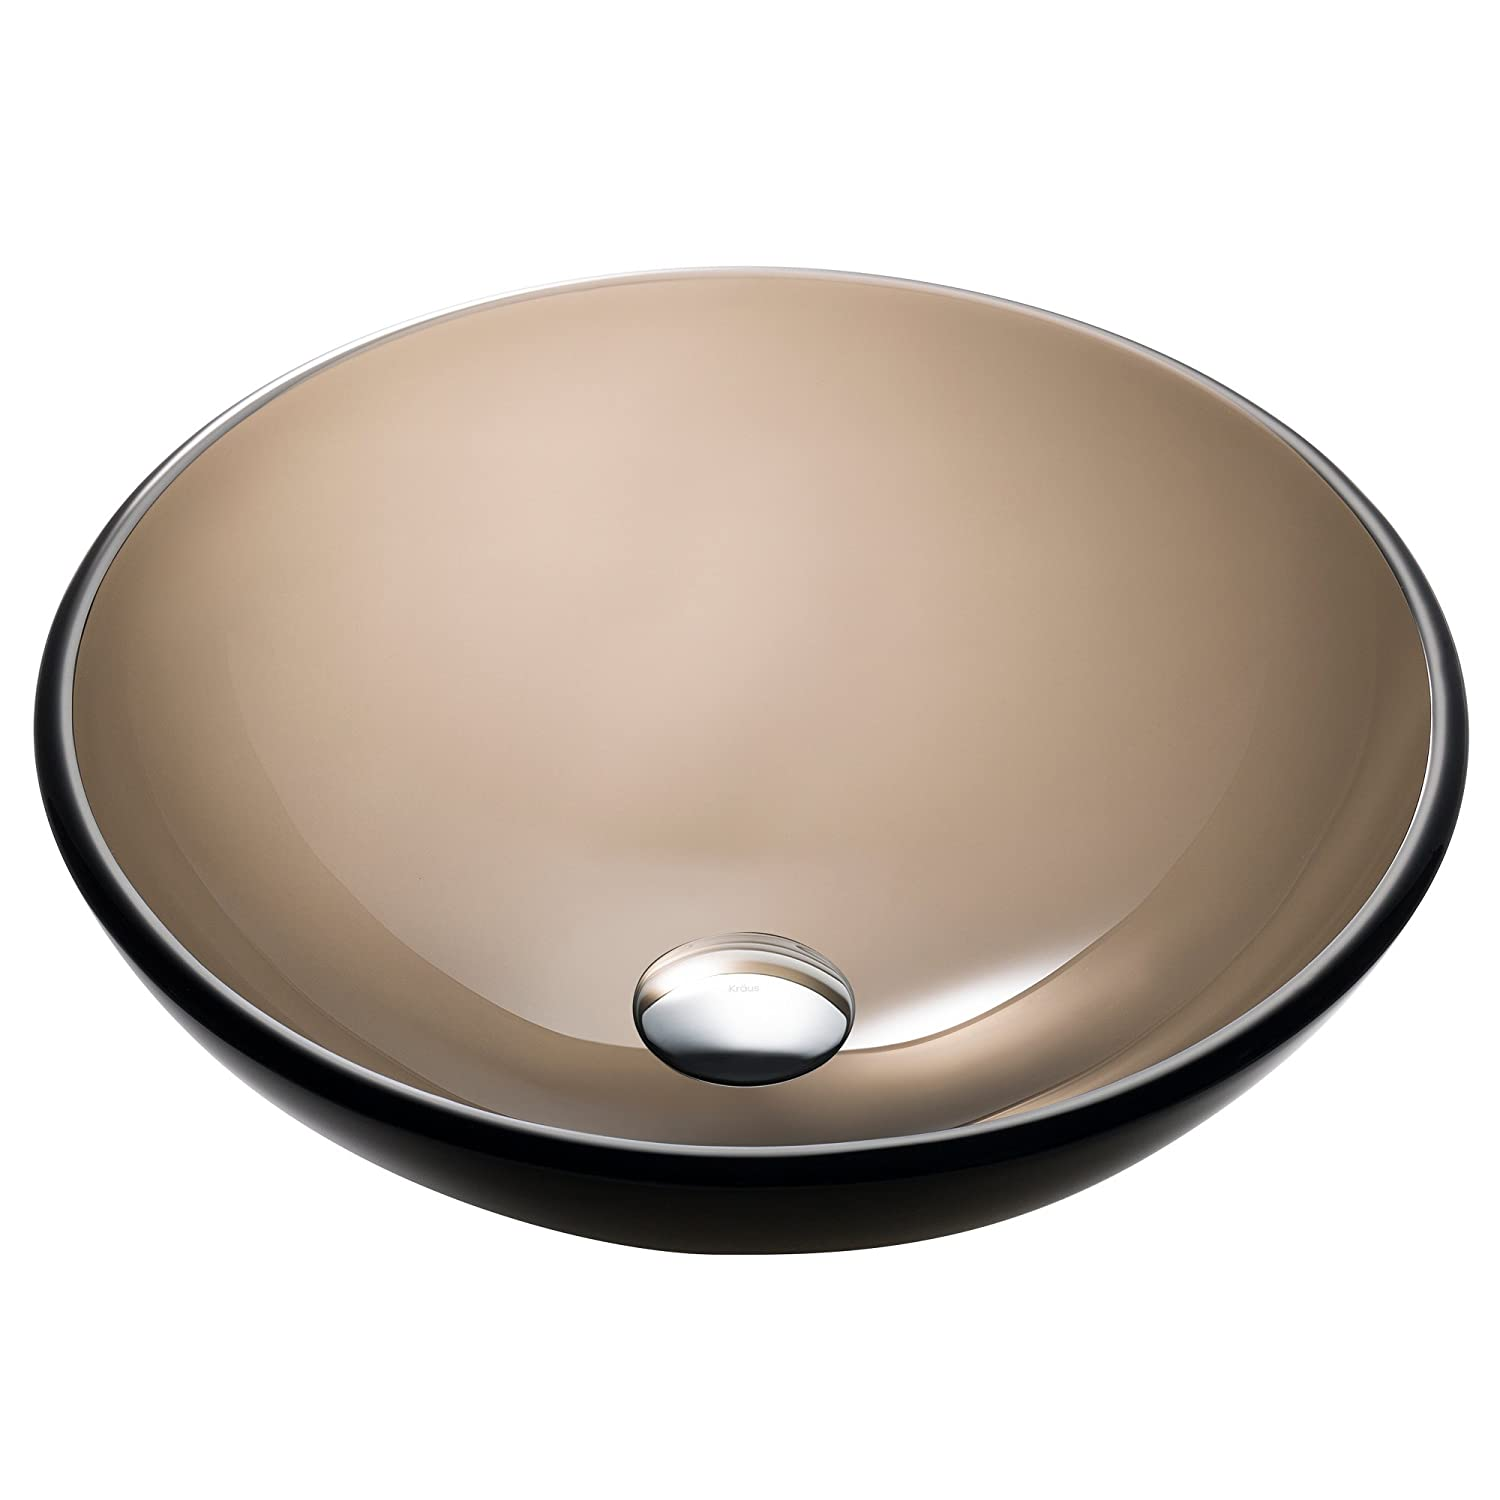 Kraus GV-103-14 Glass Above counter Round Bathroom Sink, 14 x 14 x 5.5 inches, Brown